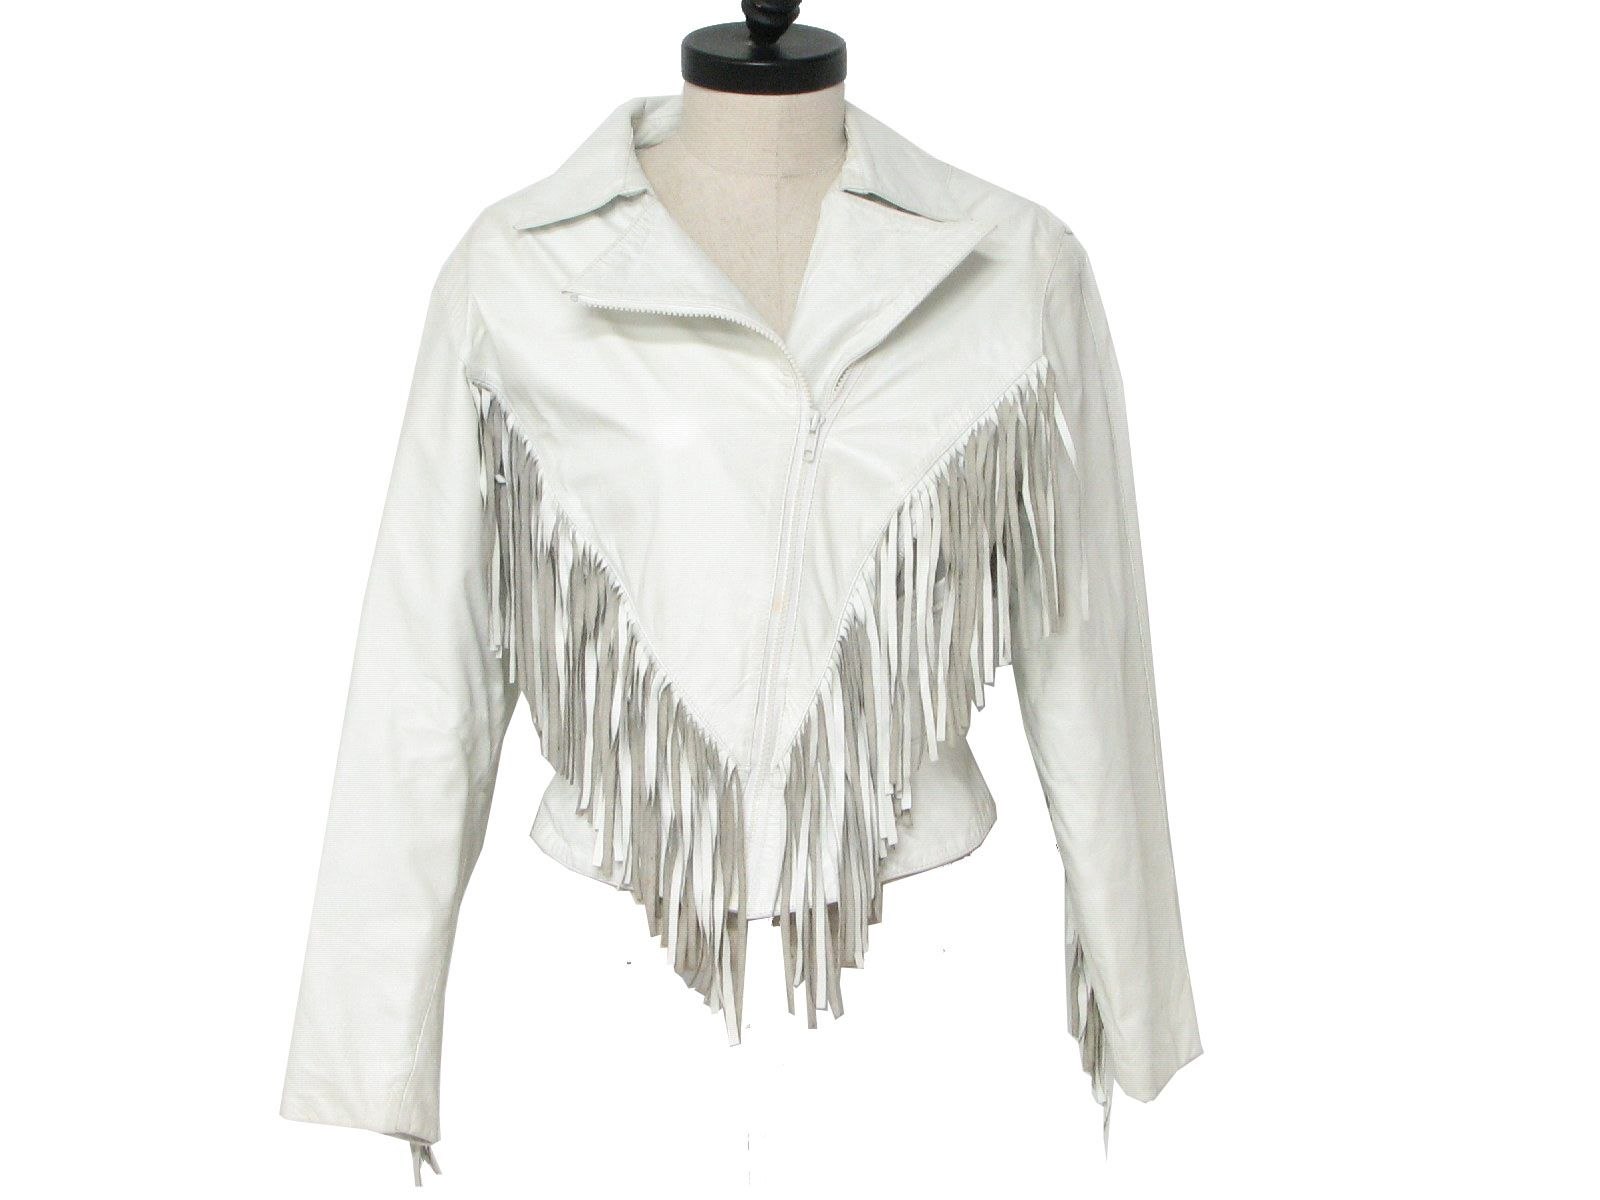 1980's Wilsons Womens Totally 80s Leather Jacket Fringe